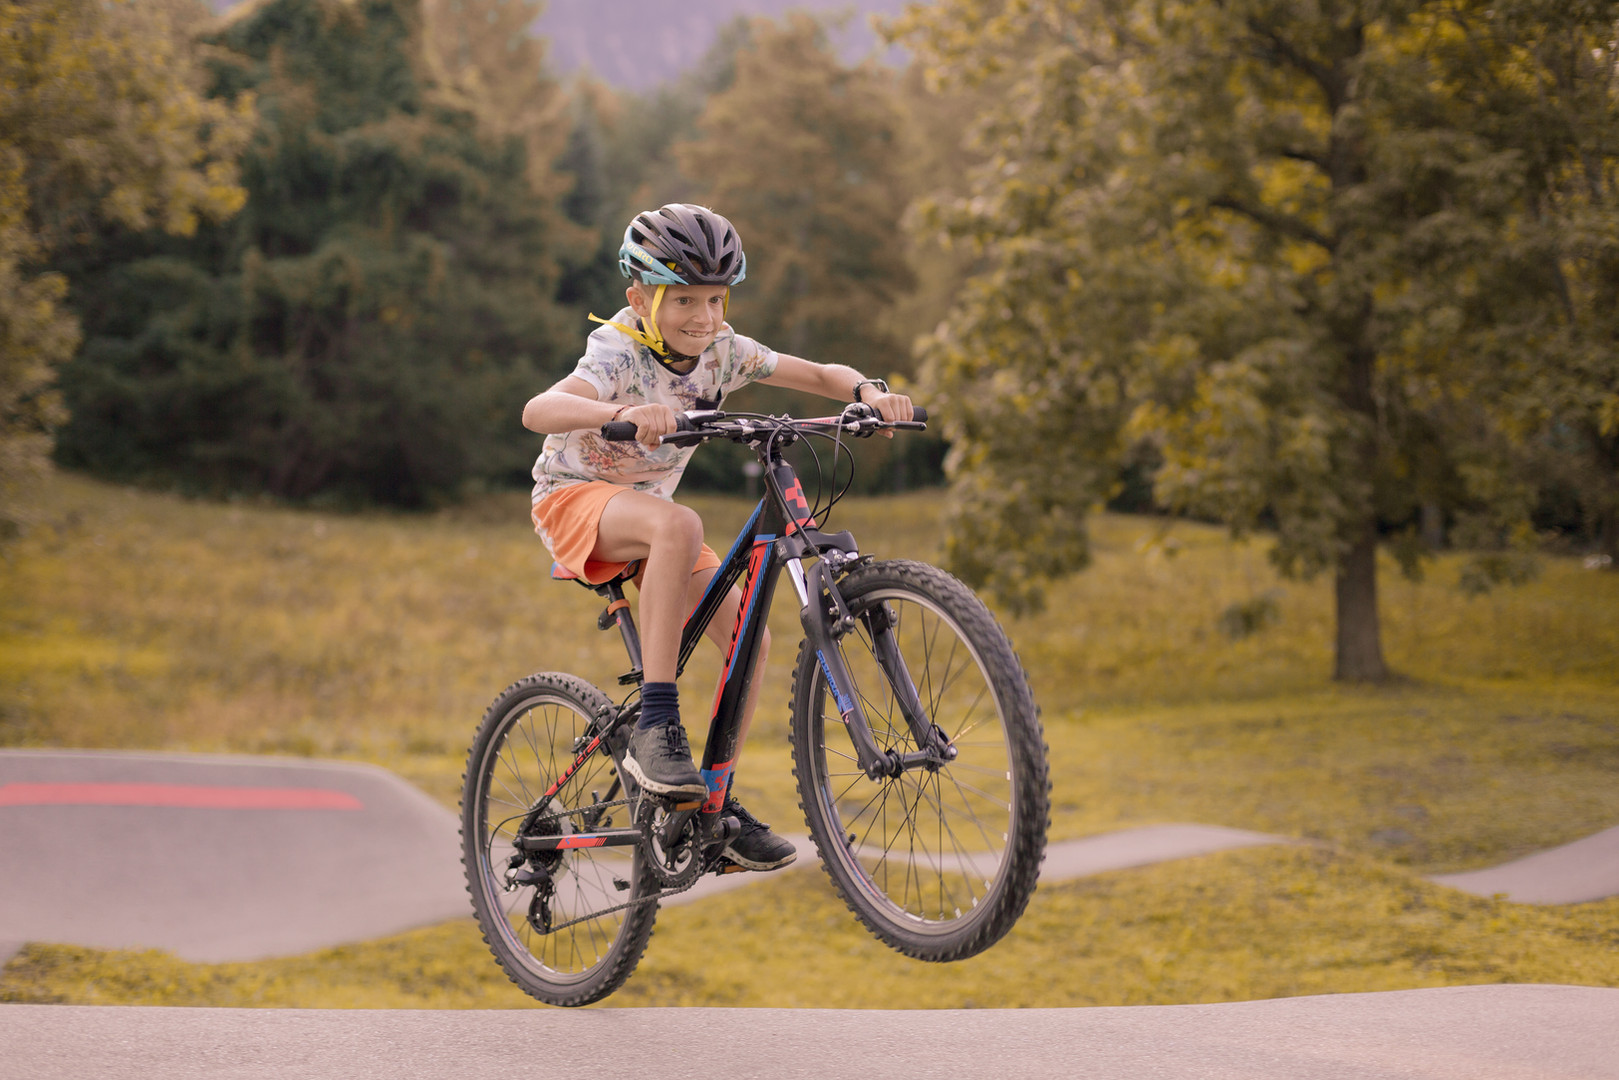 Pumptrack120920-010.jpg